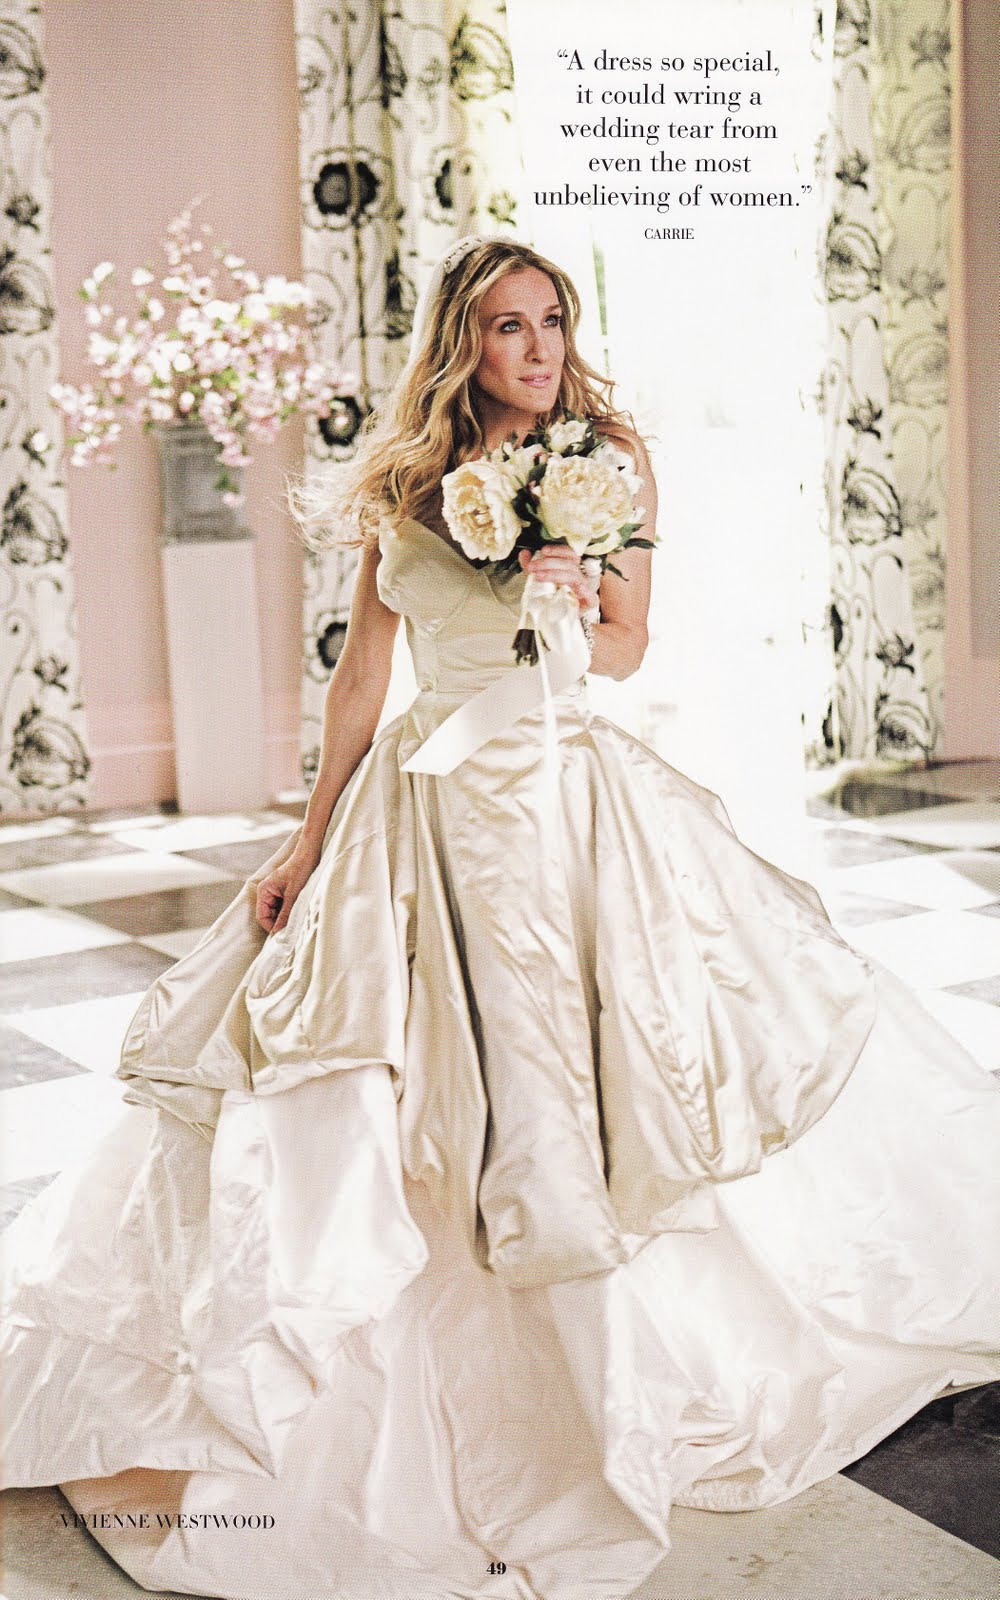 Best Wedding Dresses from TV and Film | Designer Weddings Decor and ...